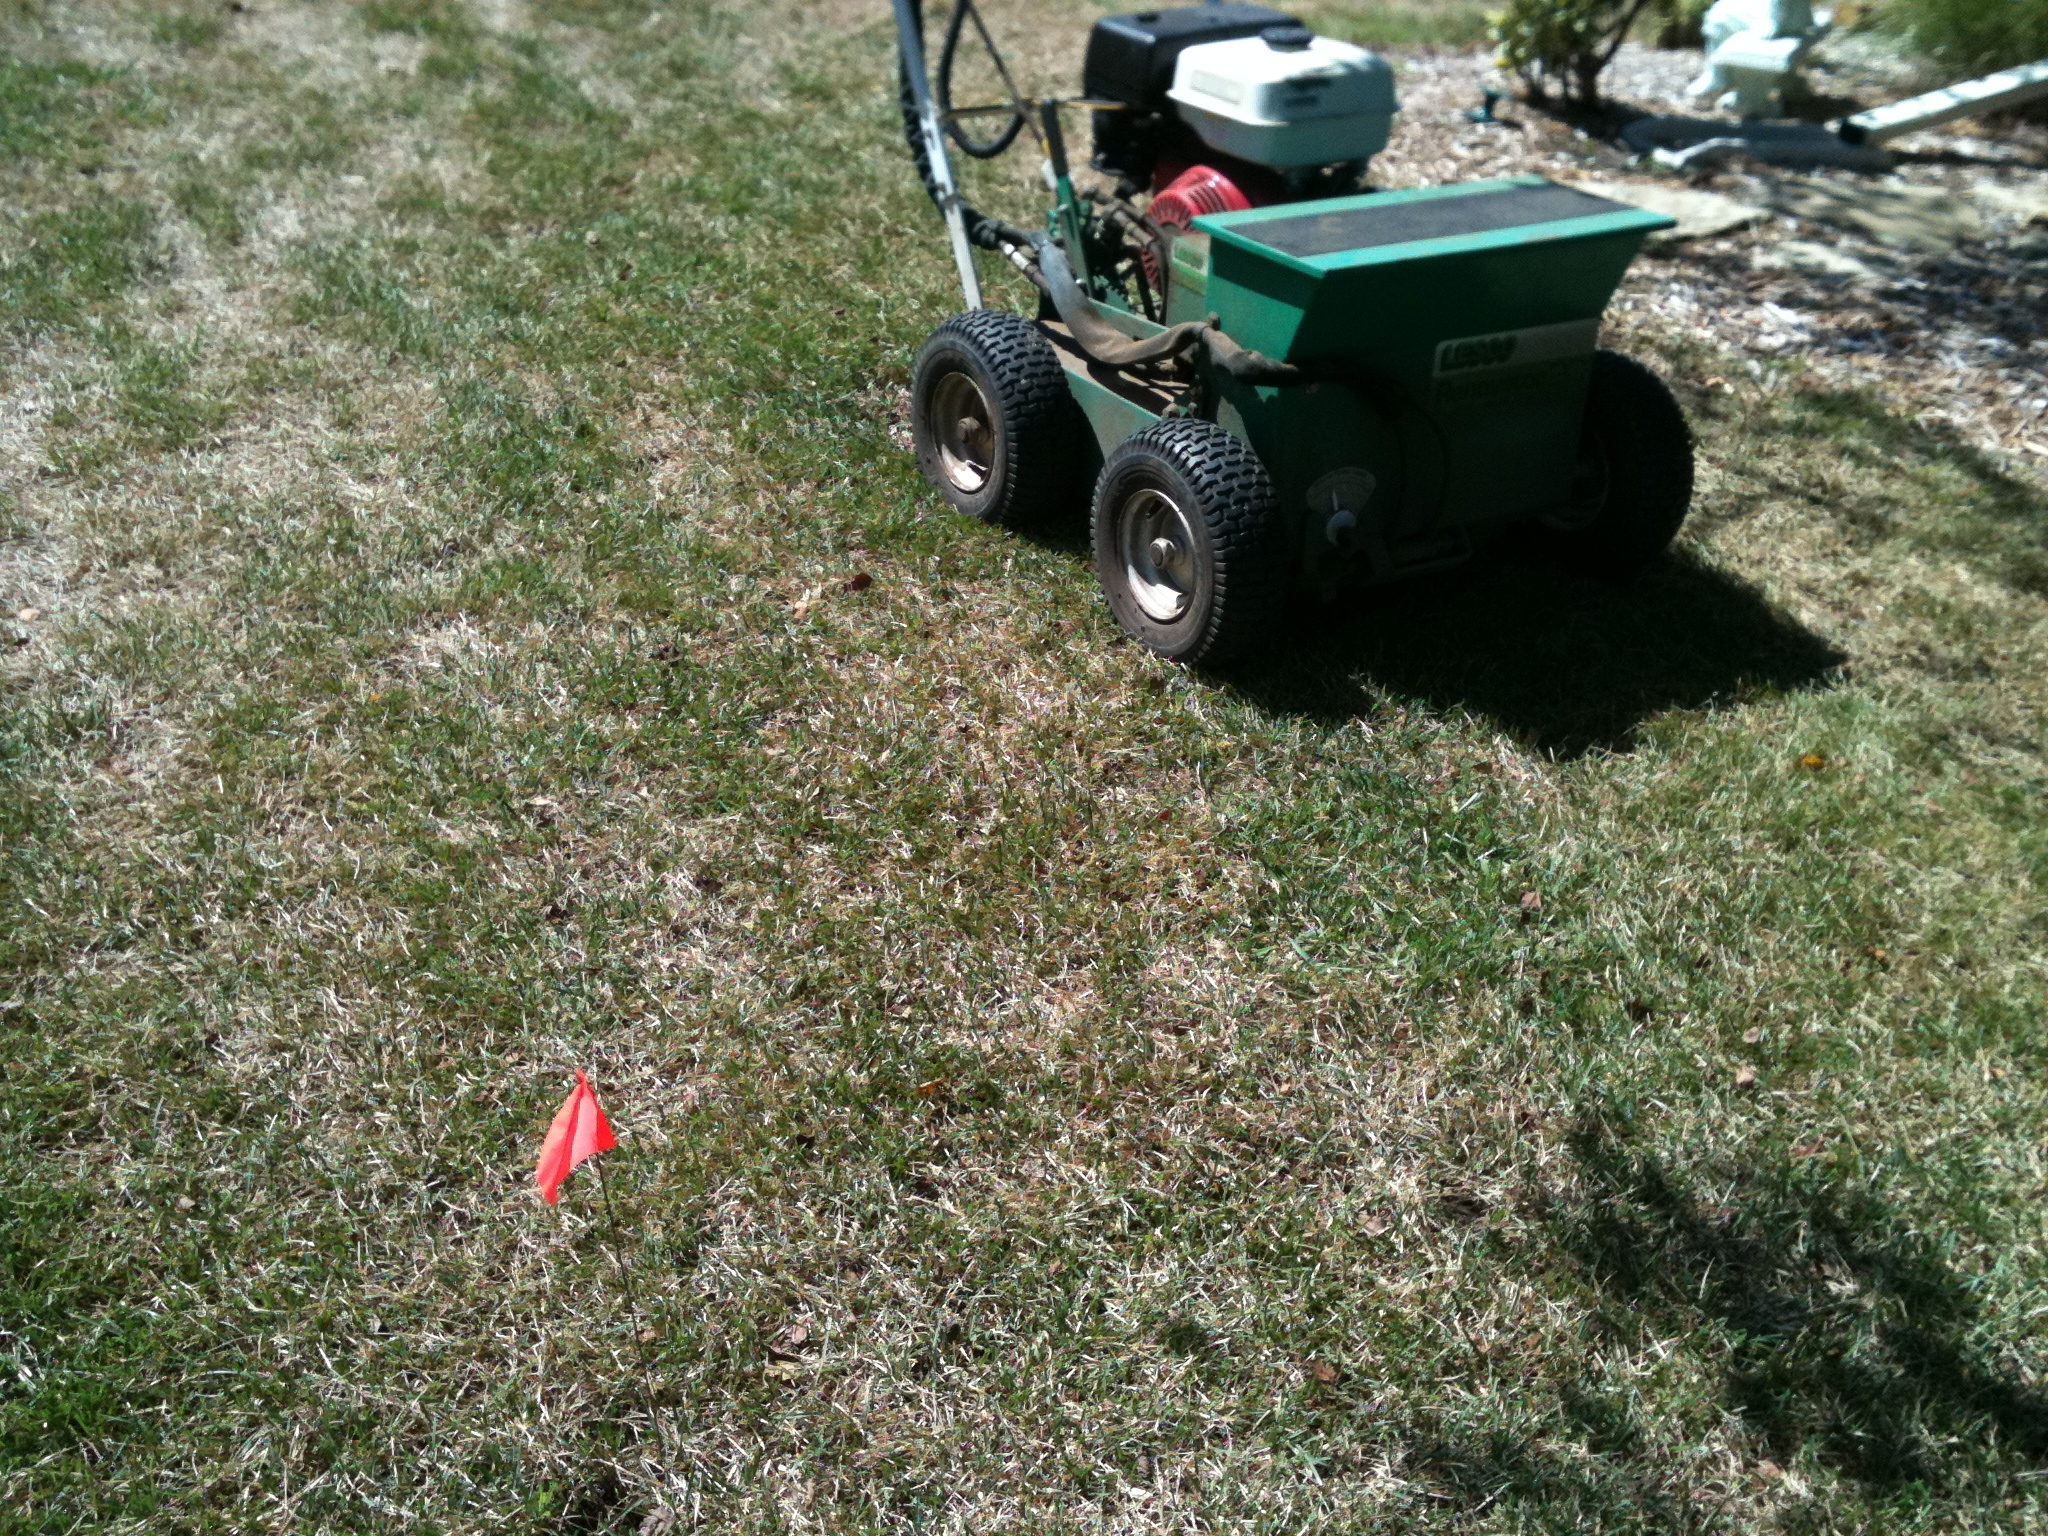 Glancing Lawns Liquid Gypsum Lawns So You Want Your Yard Aerate Verticut Overseed Core Aerating Verticut Overseed Hometown Llc Gypsum houzz-02 Gypsum For Lawns